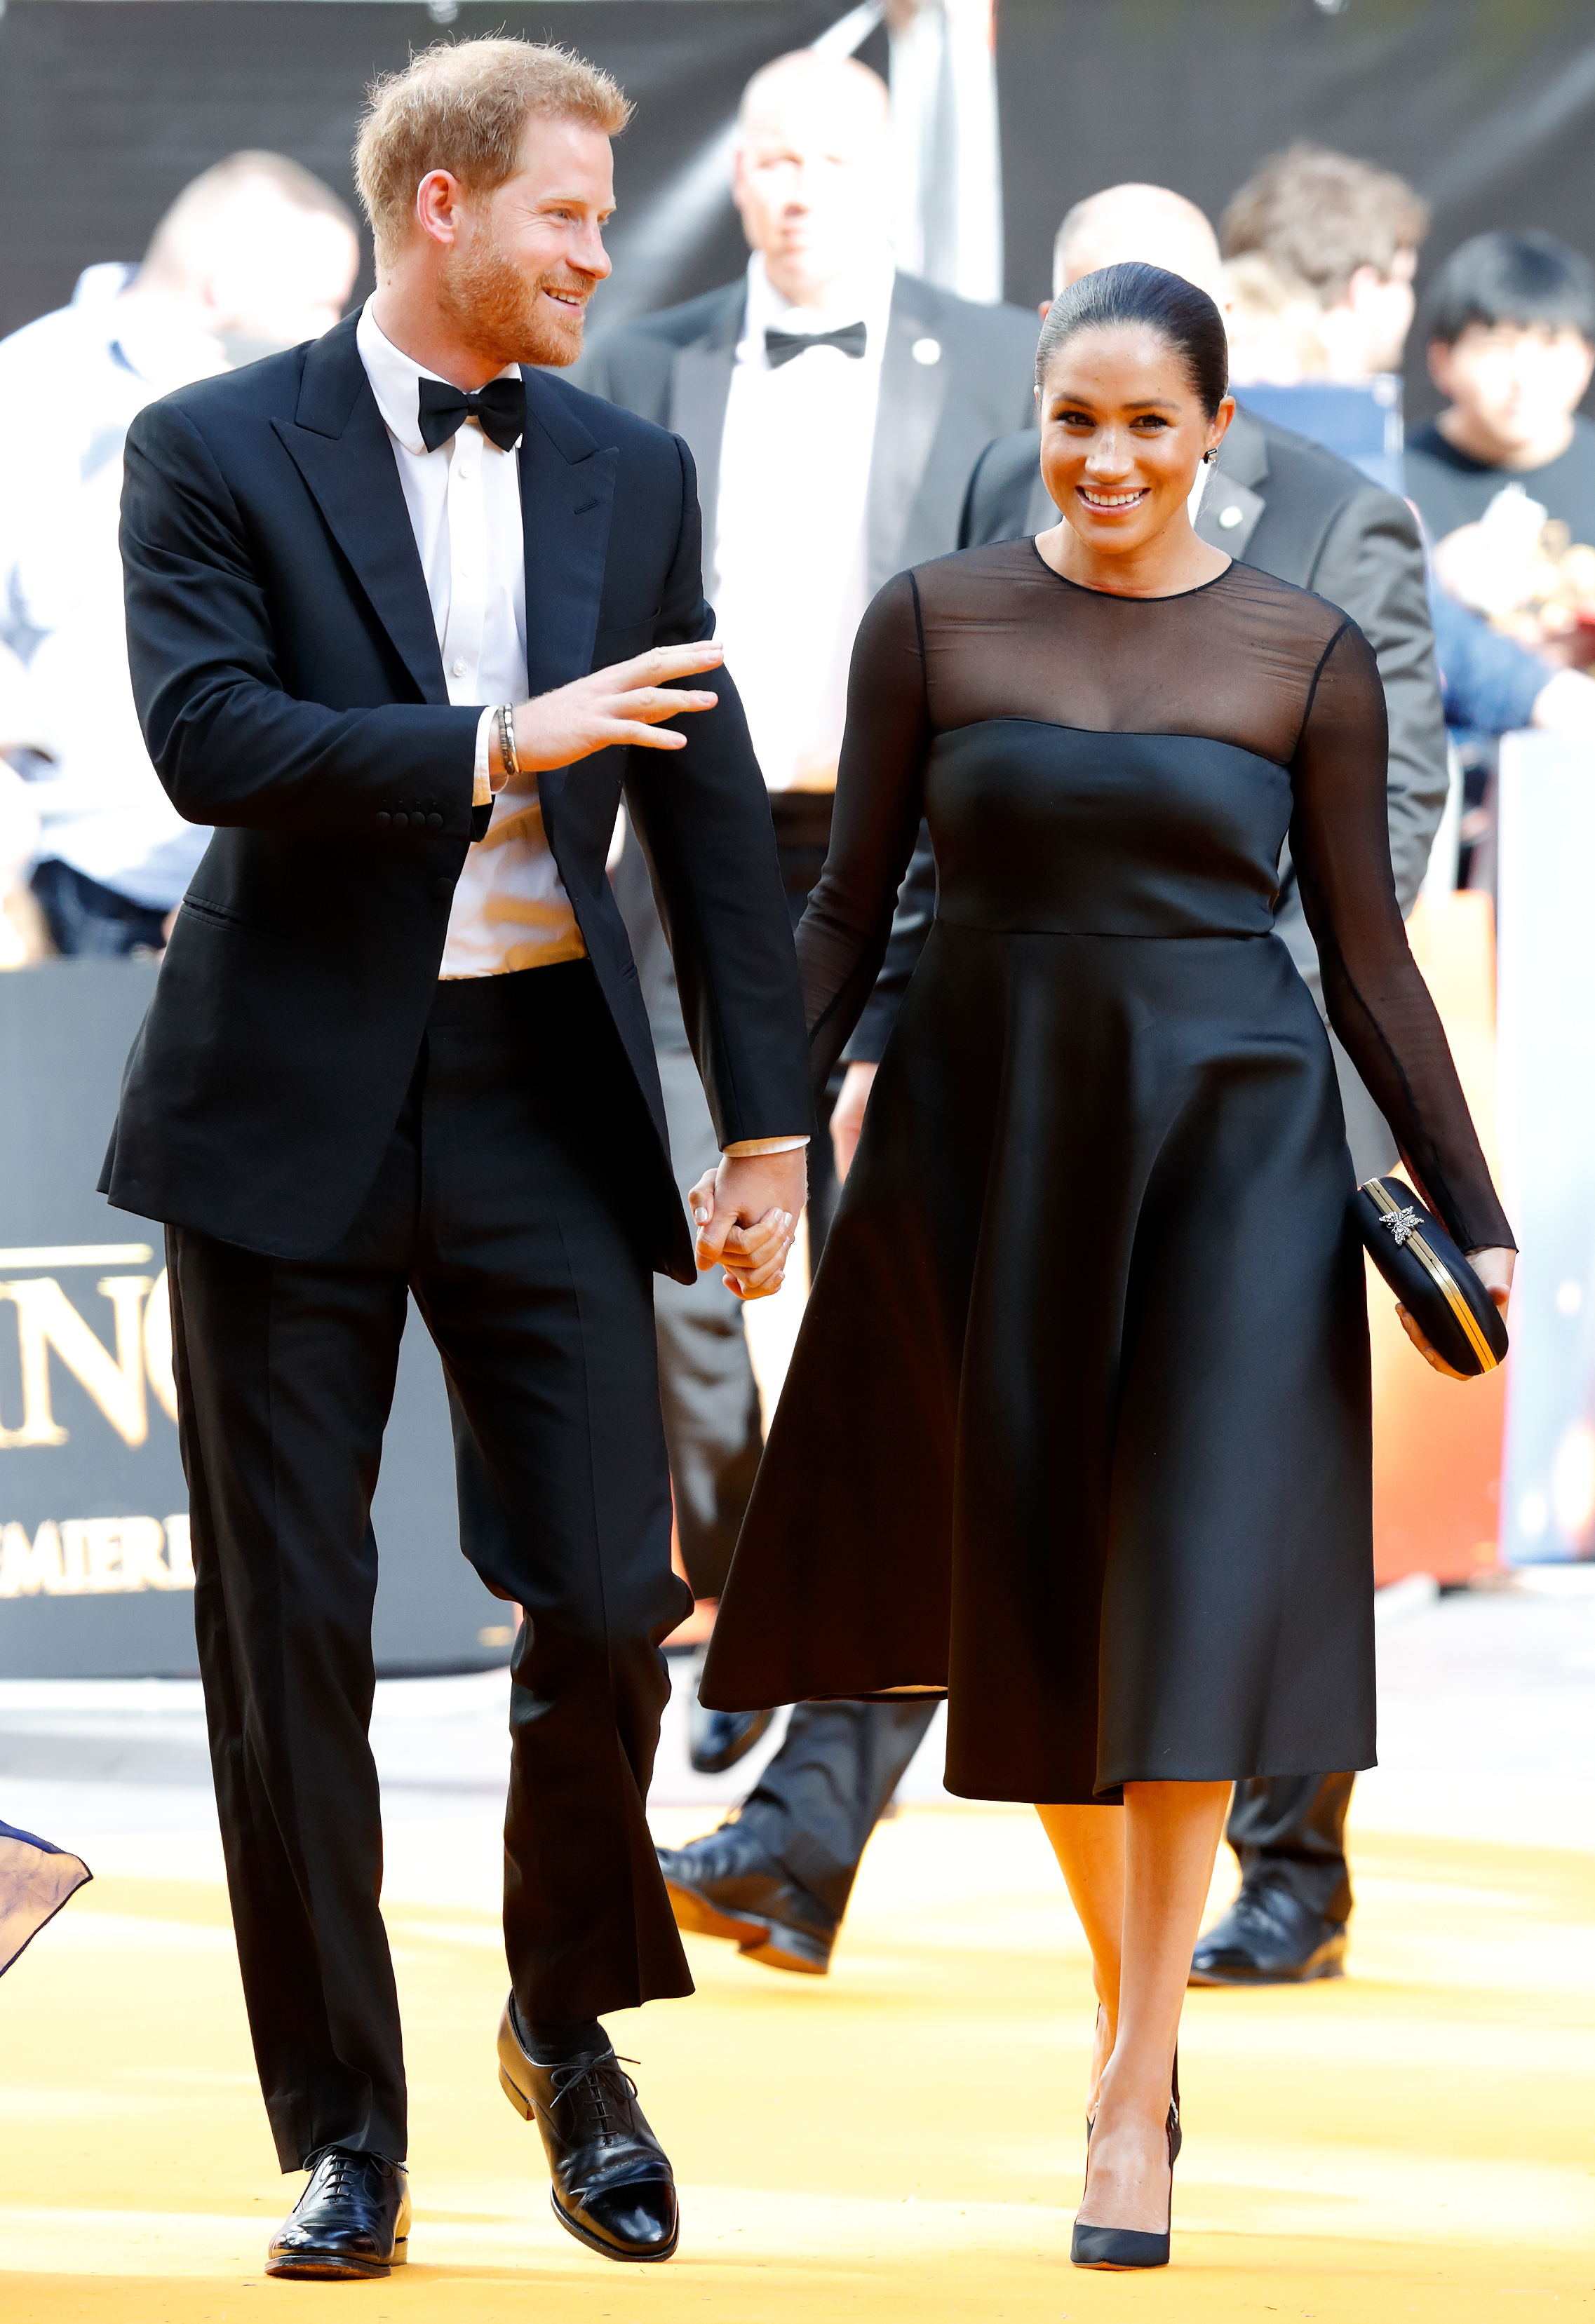 """LONDON, UNITED KINGDOM - JULY 14: (EMBARGOED FOR PUBLICATION IN UK NEWSPAPERS UNTIL 24 HOURS AFTER CREATE DATE AND TIME) Prince Harry, Duke of Sussex and Meghan, Duchess of Sussex attend """"The Lion King"""" European Premiere at Leicester Square on July 14, 2019 in London, England. (Photo by Max Mumby/Indigo/Getty Images)"""